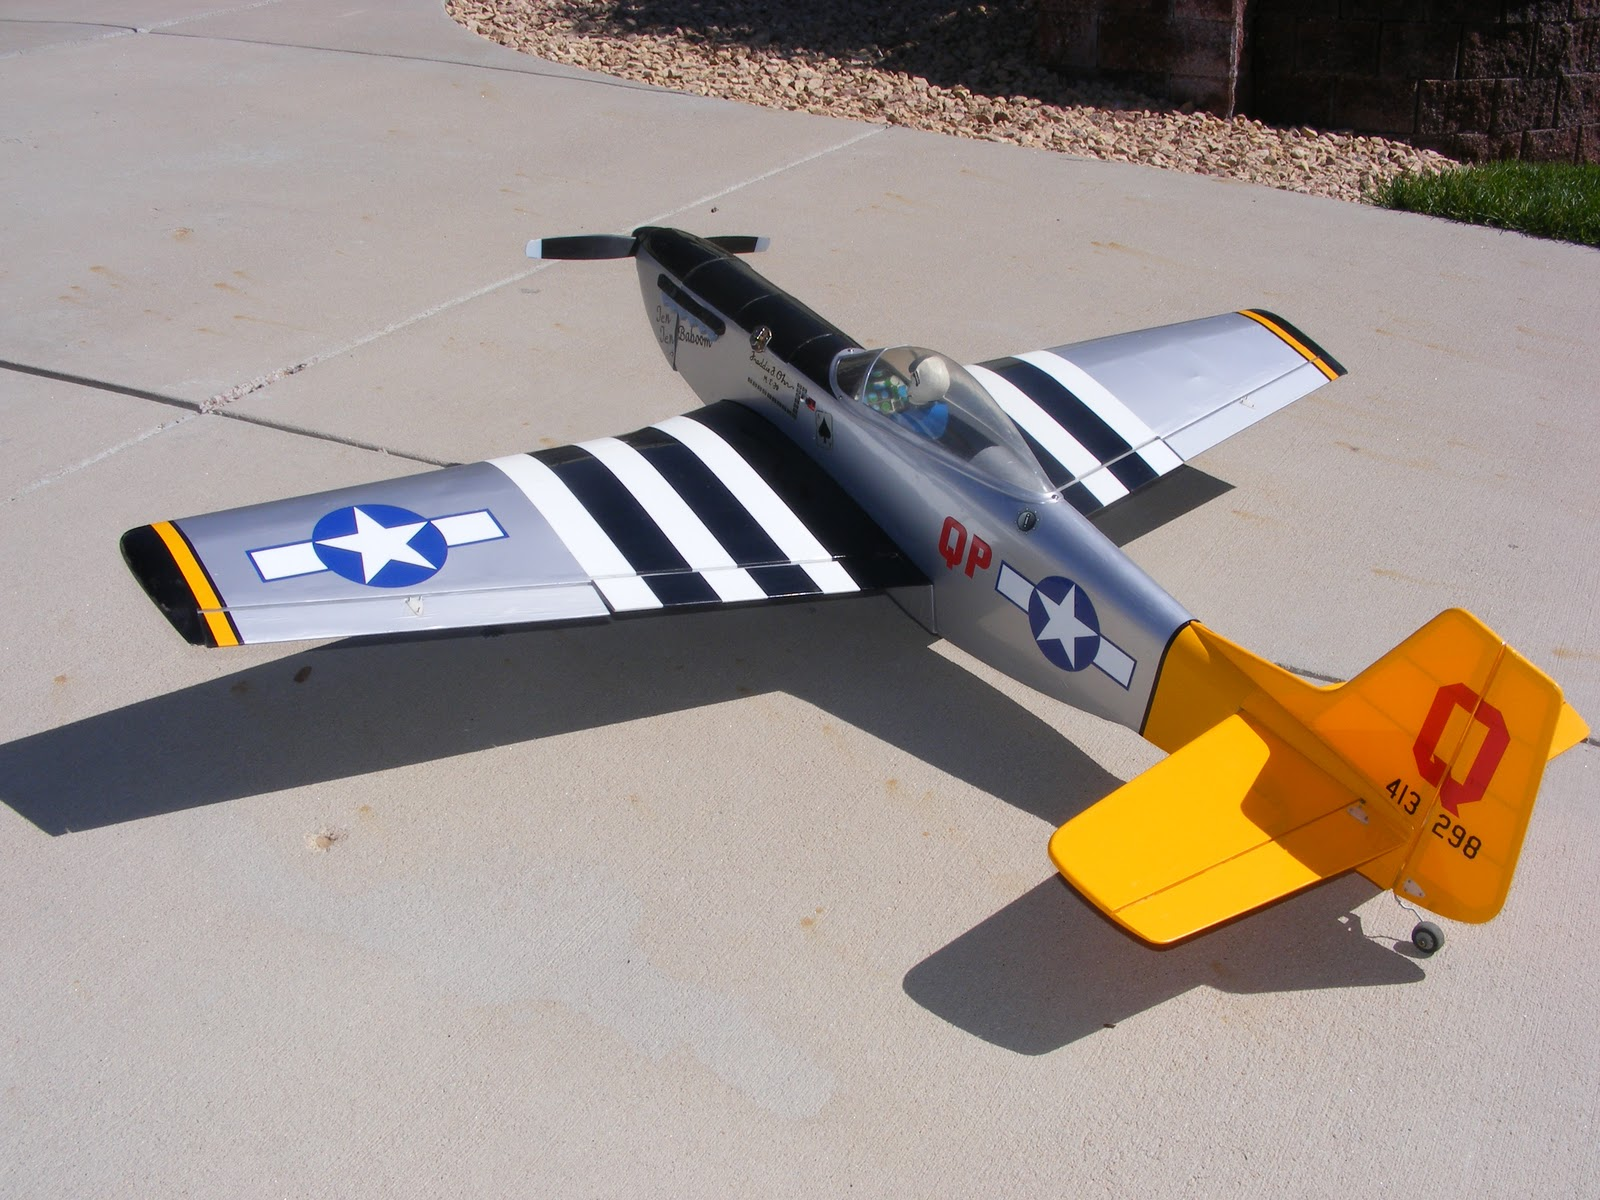 Crazzyflyer s Rc Planes  RC Plane Building   Electric Conversions     RC Plane Building   Electric Conversions  Hangar 9 P 51 Mustang PTS